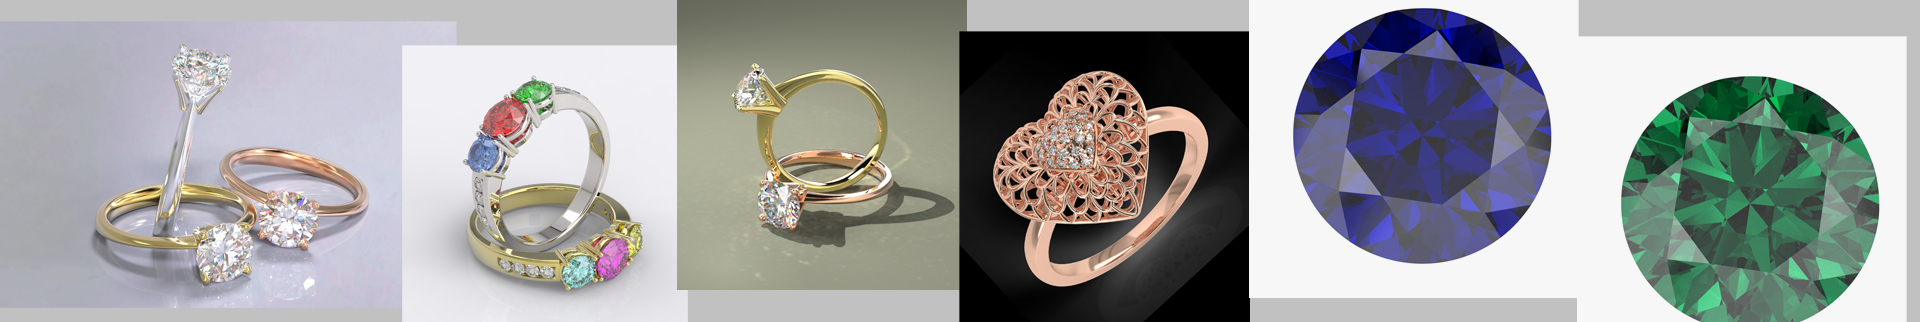 Jewelry Photo Editing, Retouching Services, Jewelry CAD Designing, Rendering and Animation Services